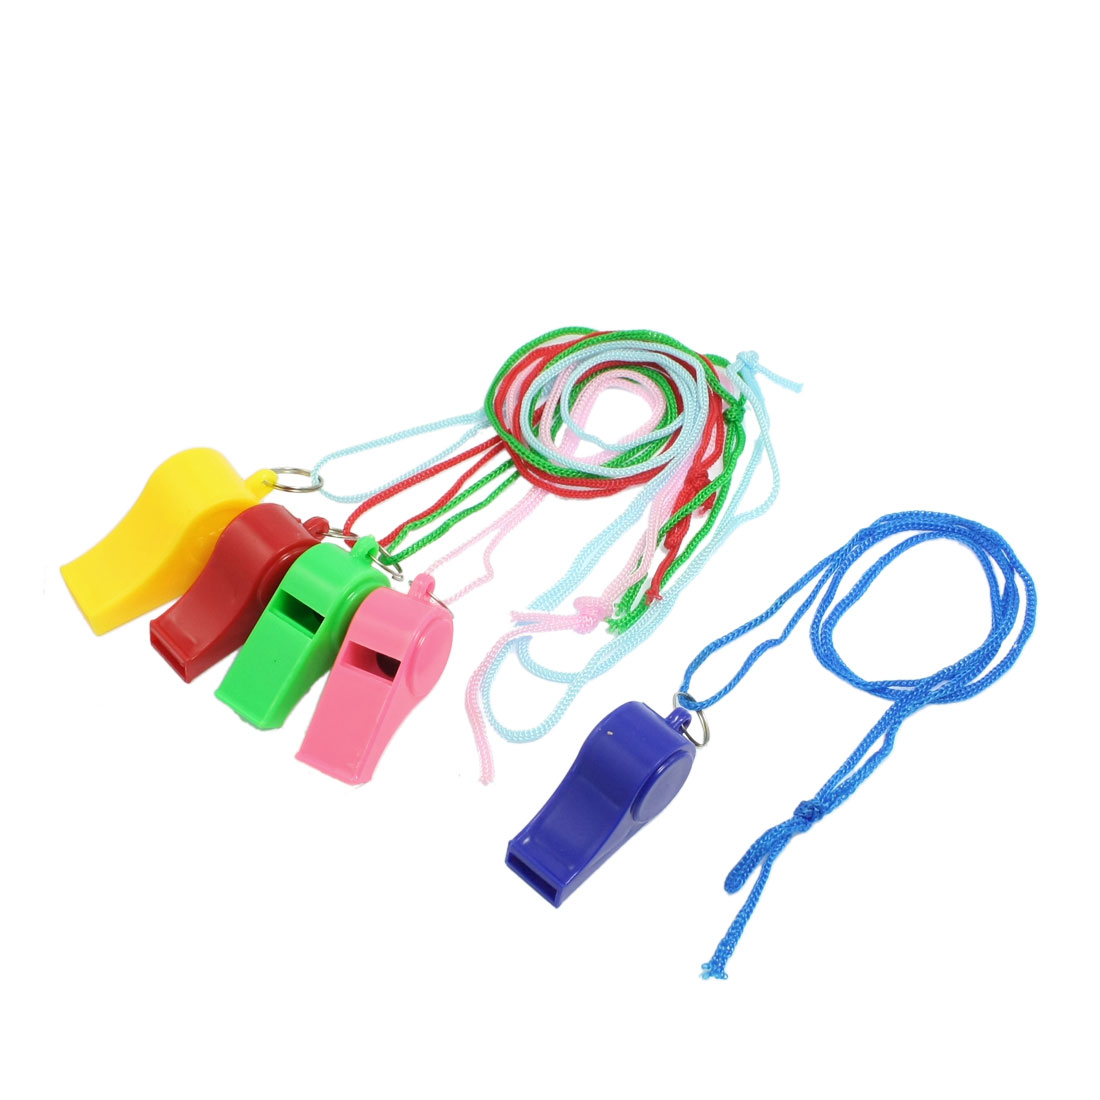 Sports Referee Game Multi Color Plastic Whistle Toy 5 Pcs